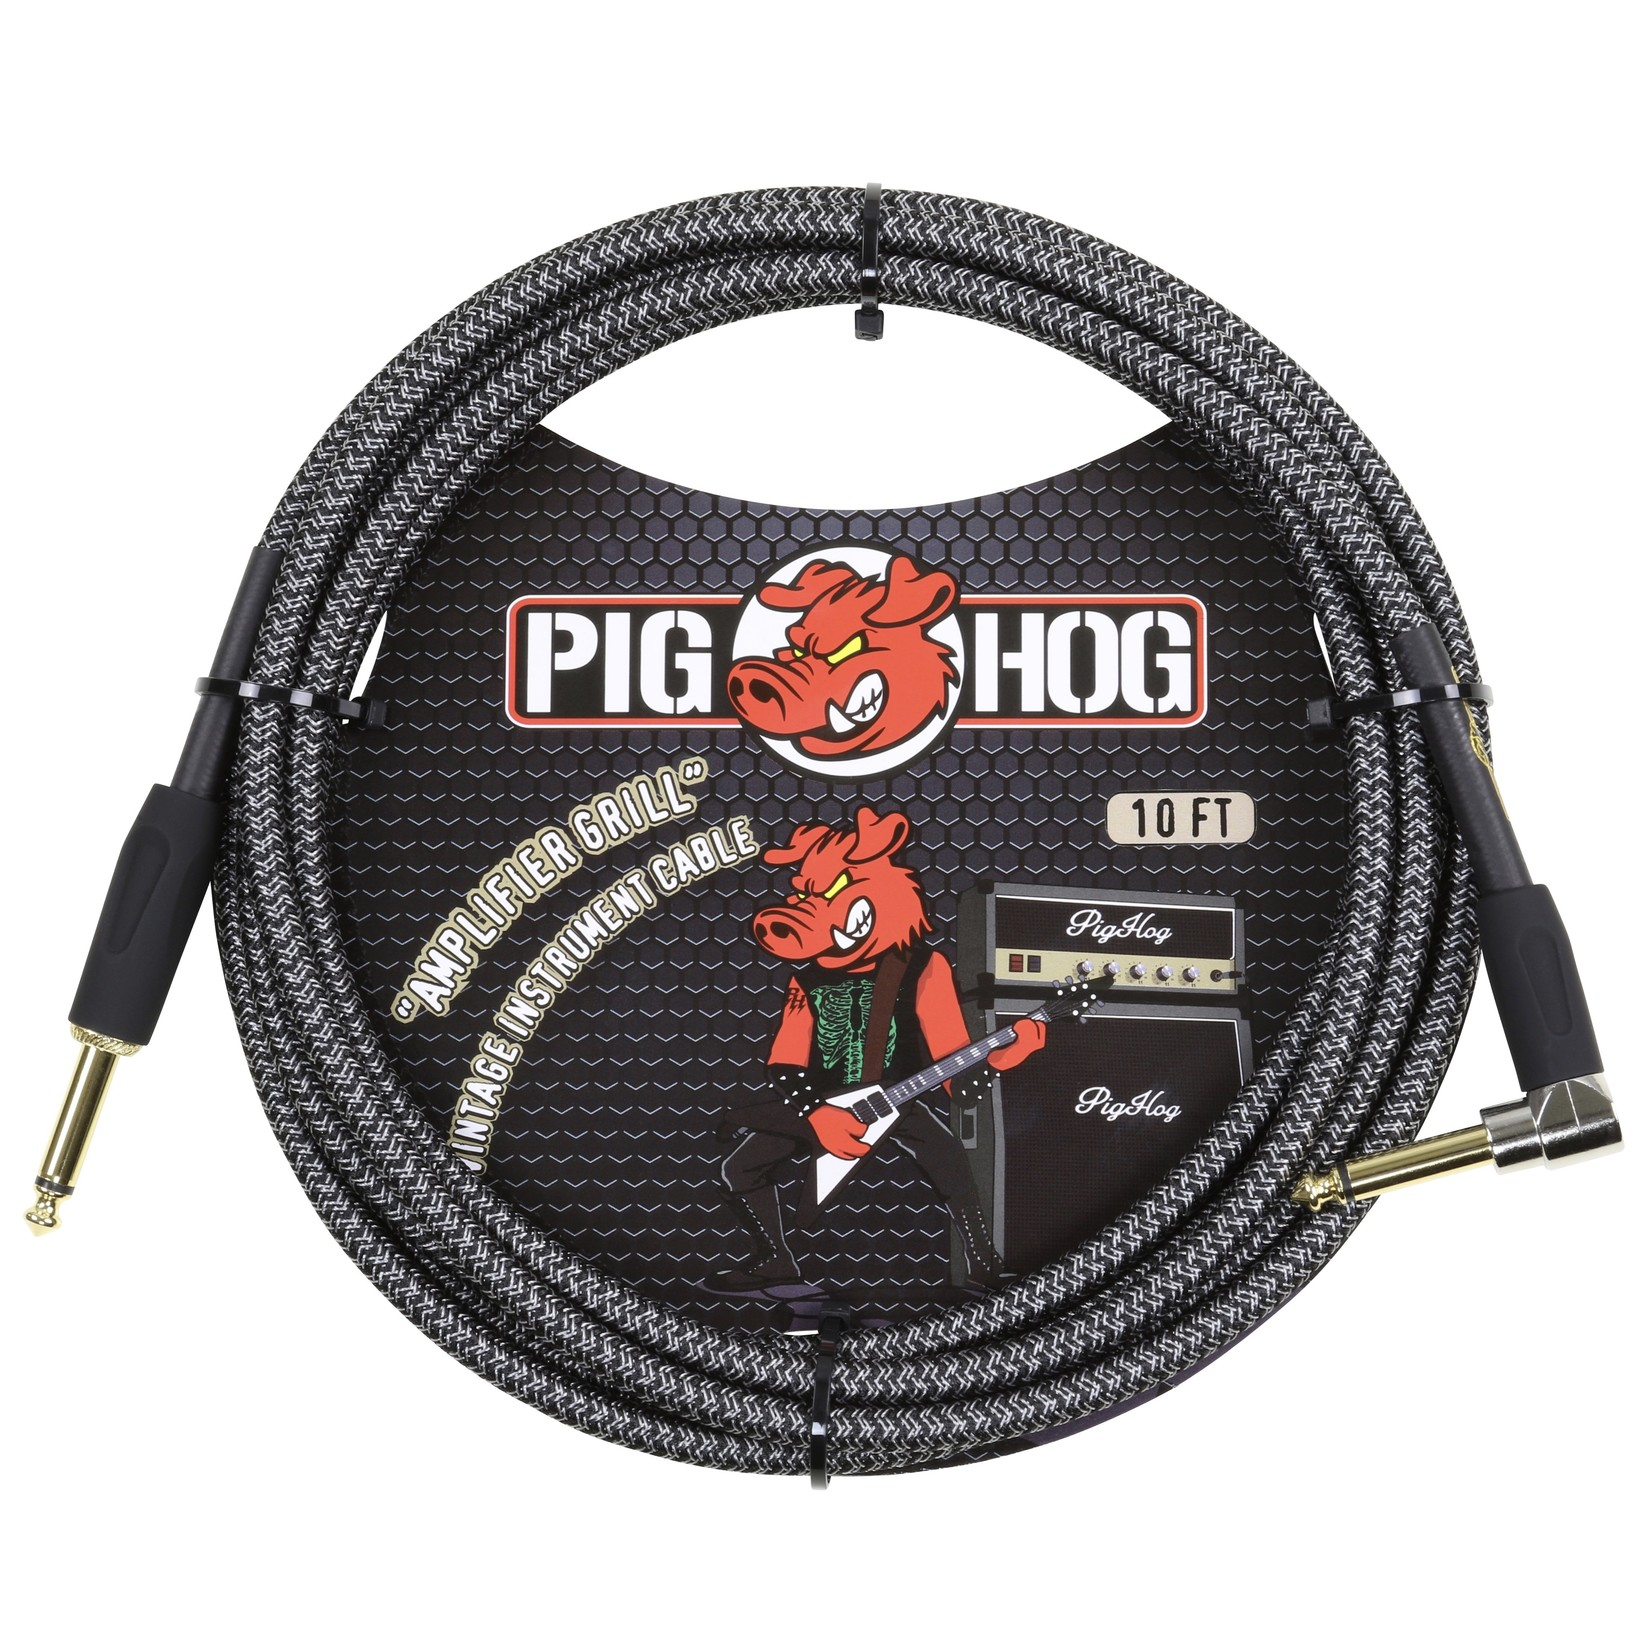 "Pig Hog Pig Hog ""Amplifier Grill"" (Black/Silver) Vintage Woven 10-ft Instrument Cable, 1/4""-1/4"" Rt Angle"